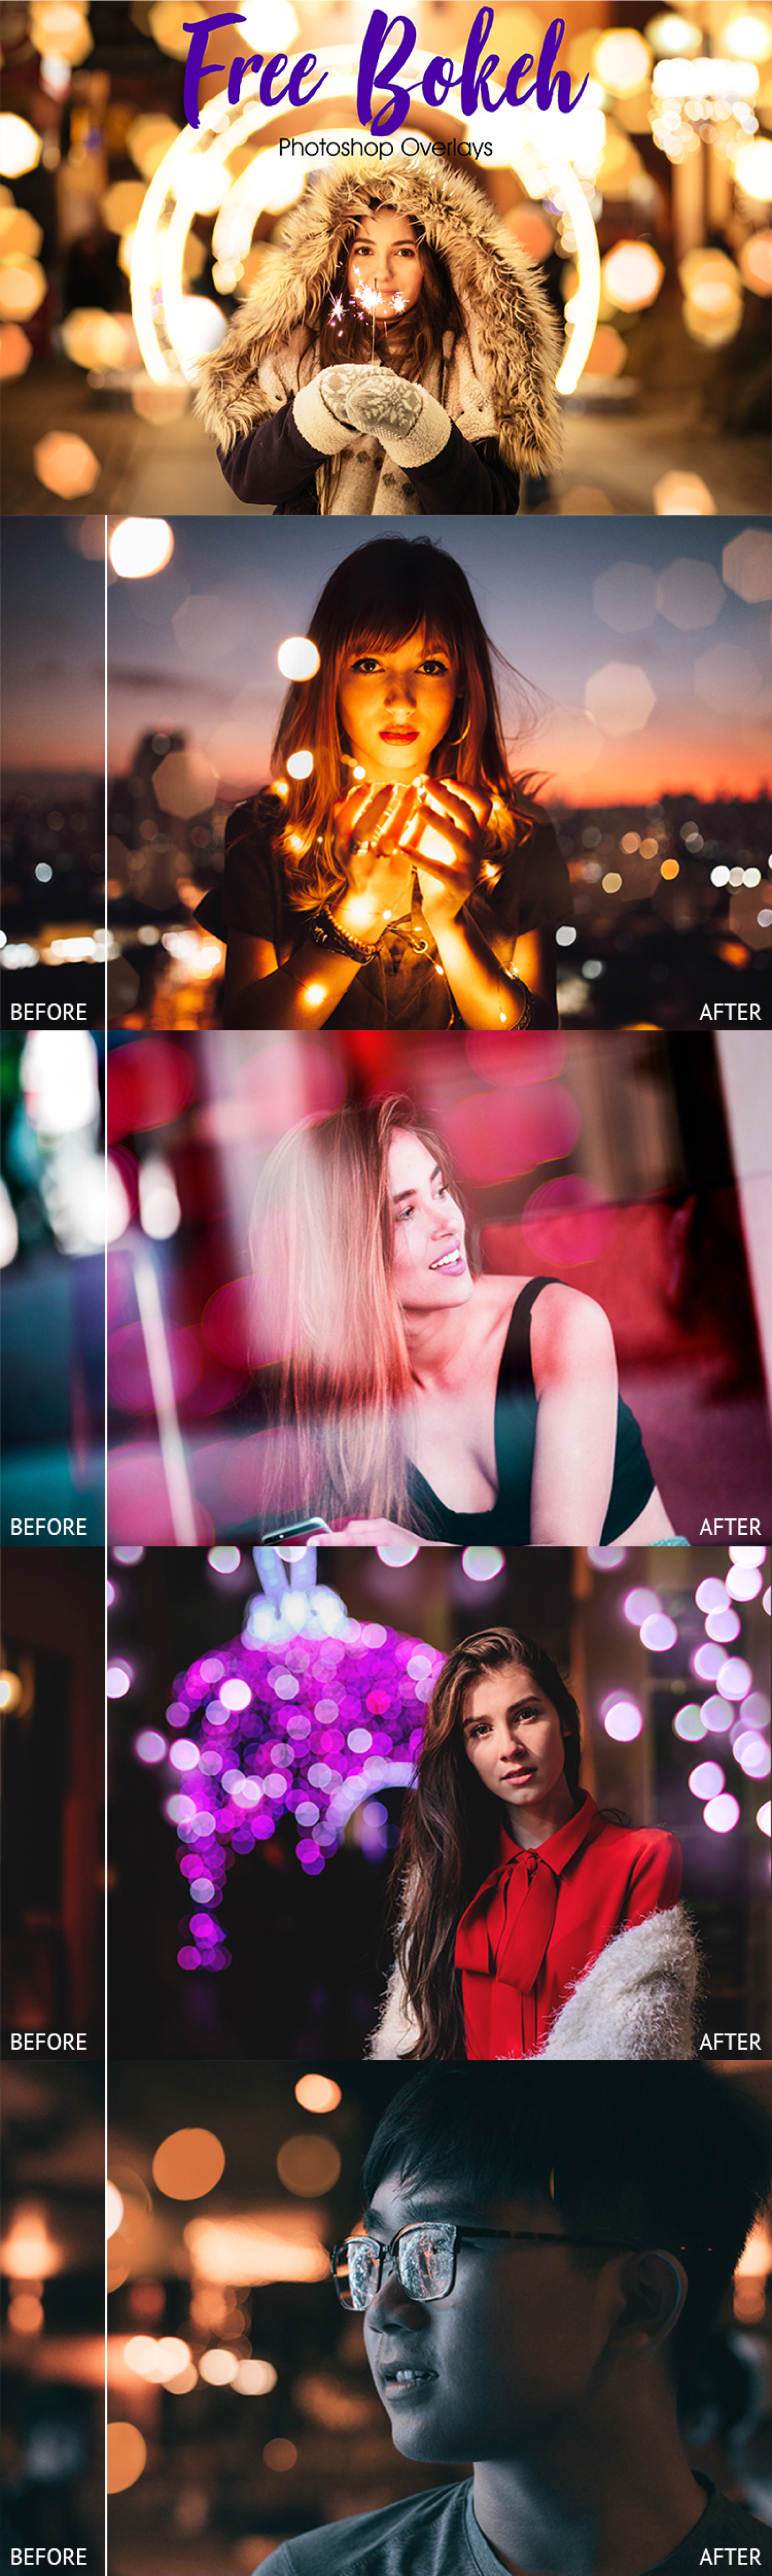 10 Free Bokeh Overlays for Photoshop on Behance